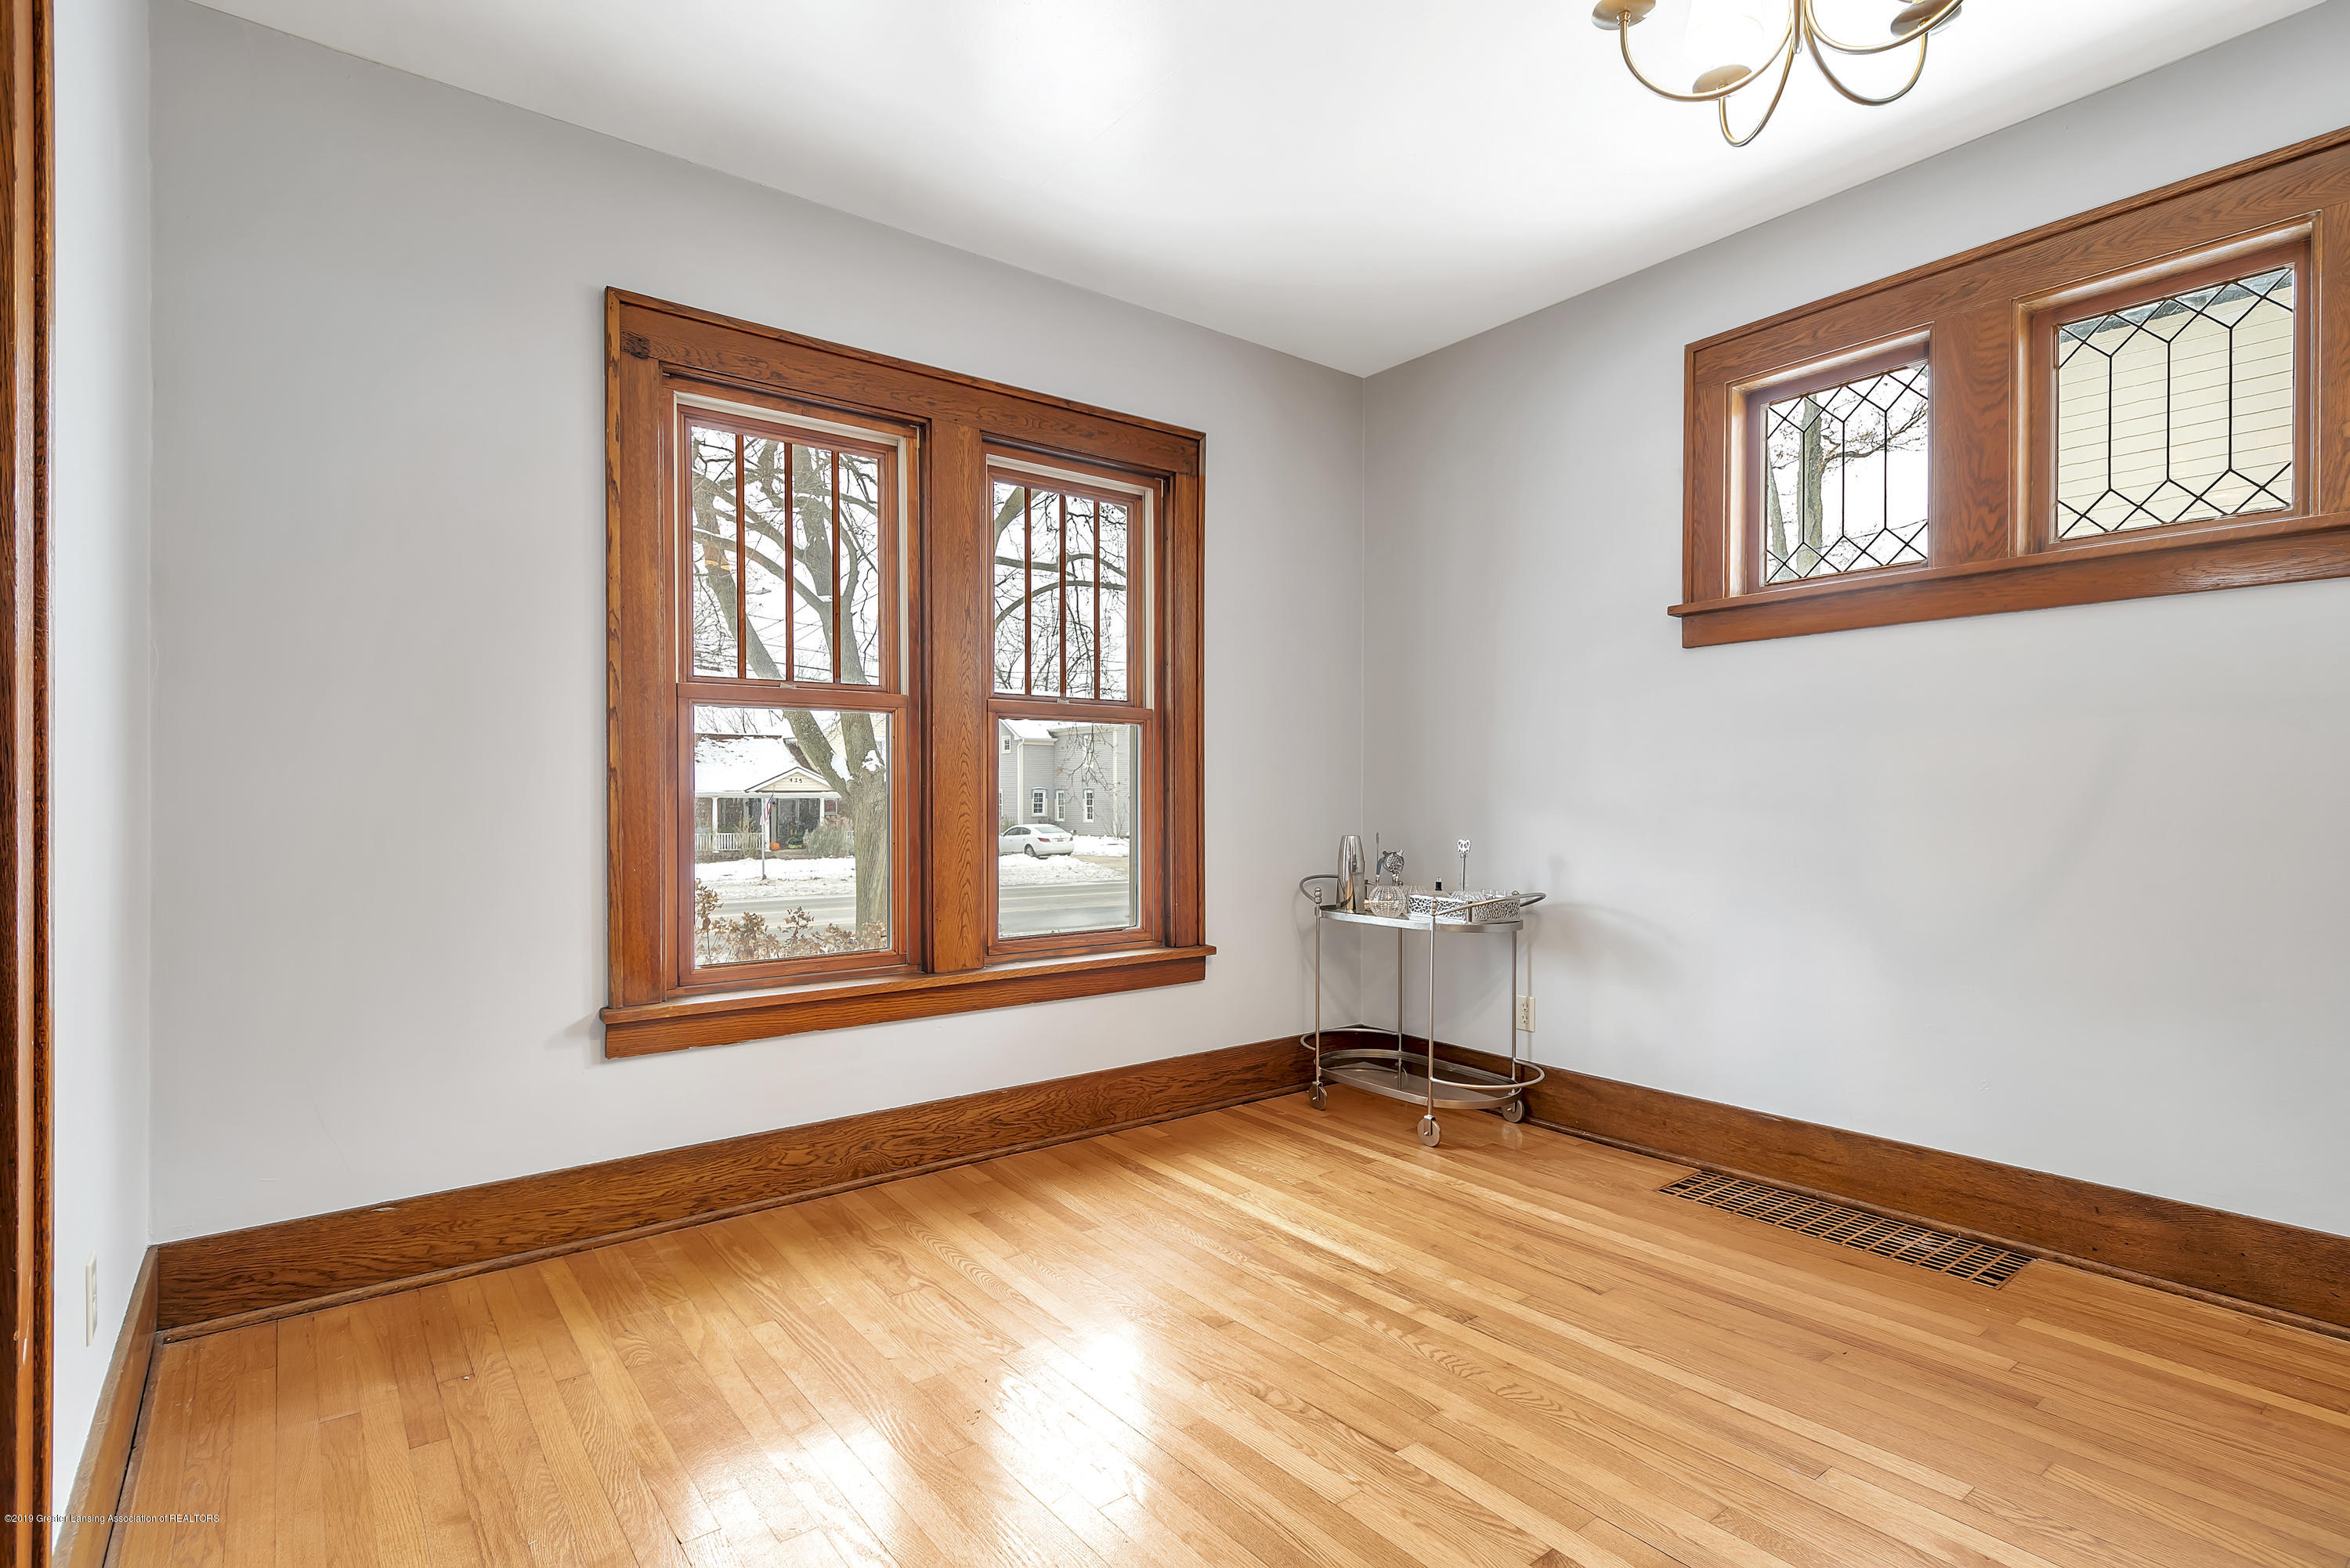 412 E Jefferson St - 412-E-Jefferson-WindowStill-Real-Estate- - 16